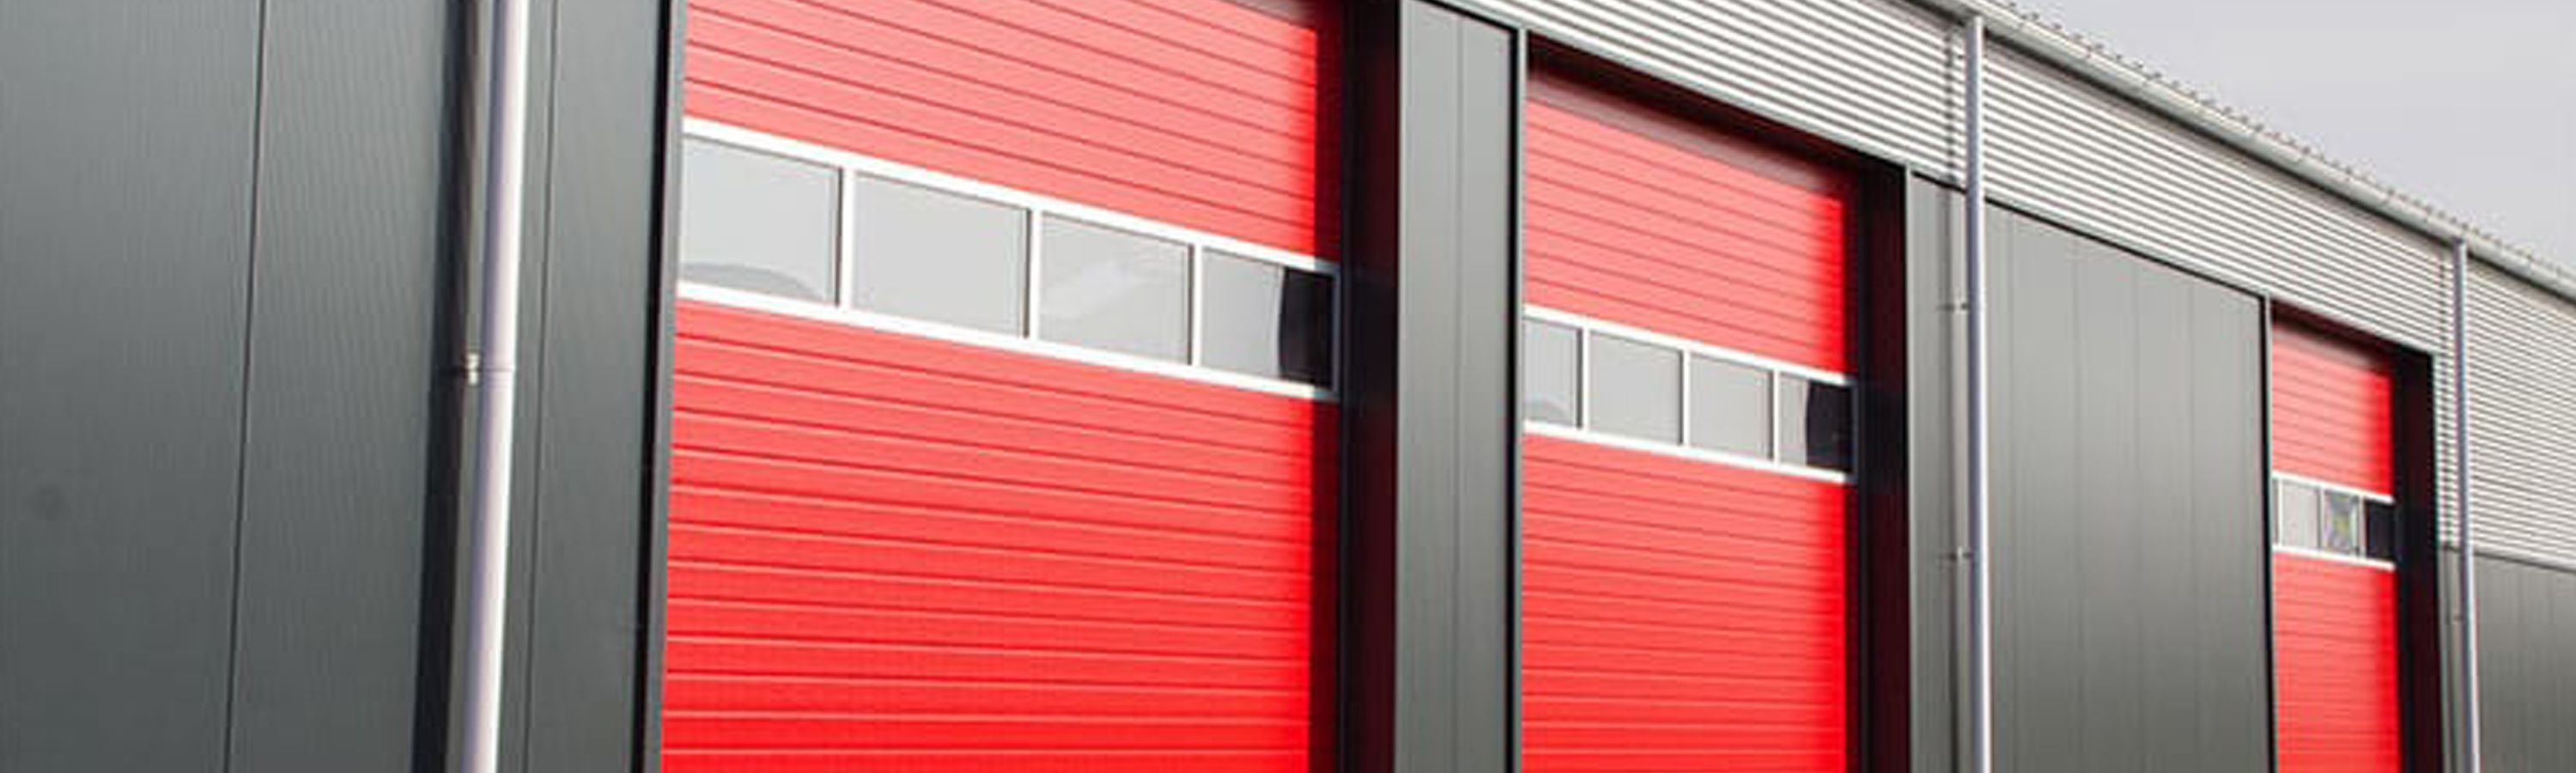 Commercial Door Repair Phoenix Parker Garage Doors